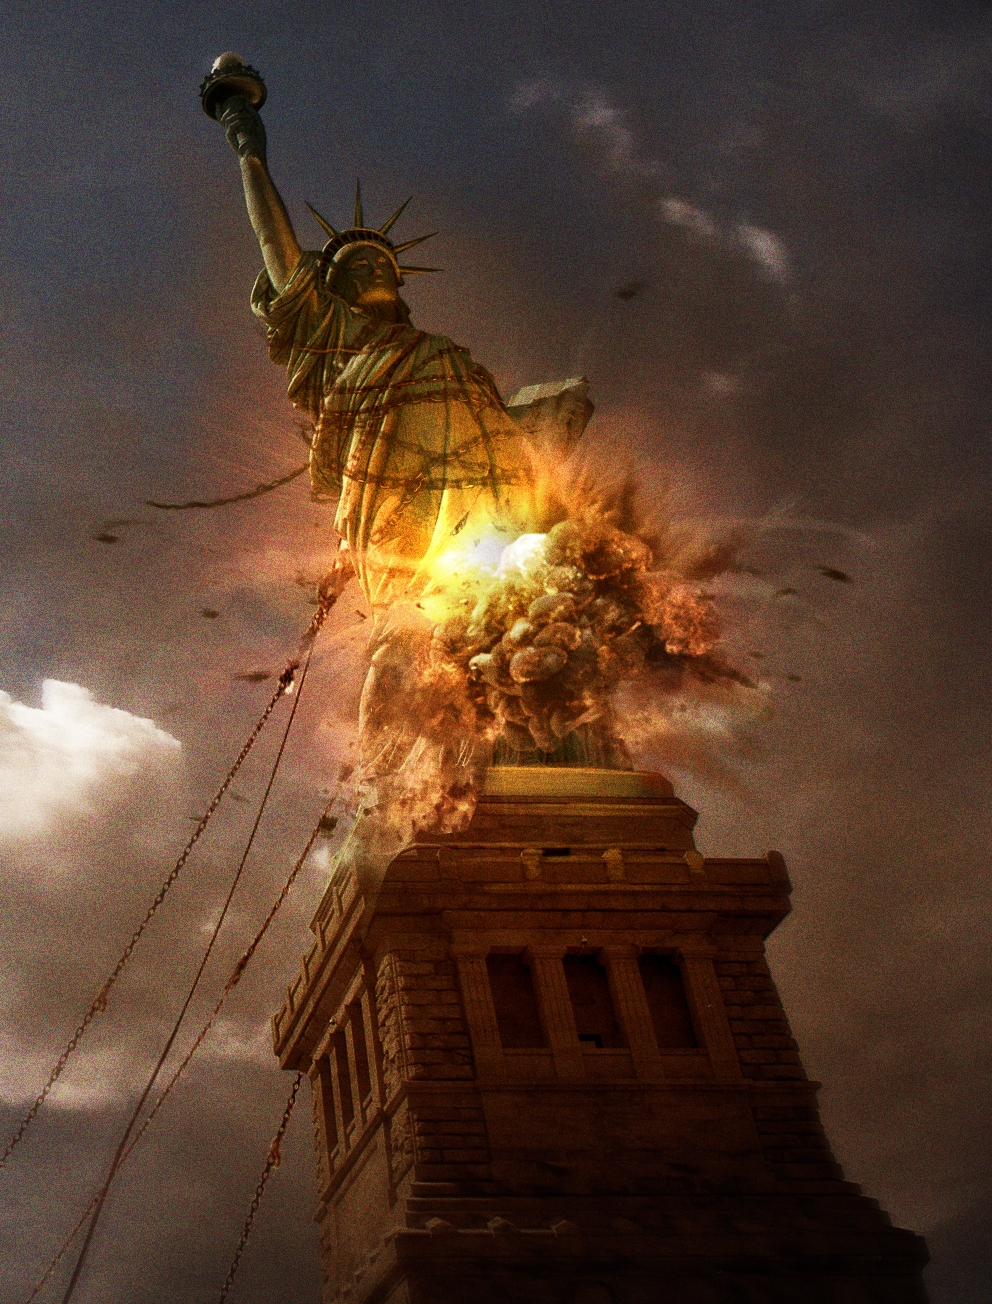 They Were Tearing Down Liberty >> President Demolishes Statue Of Liberty Declares Antifa A Terrorist